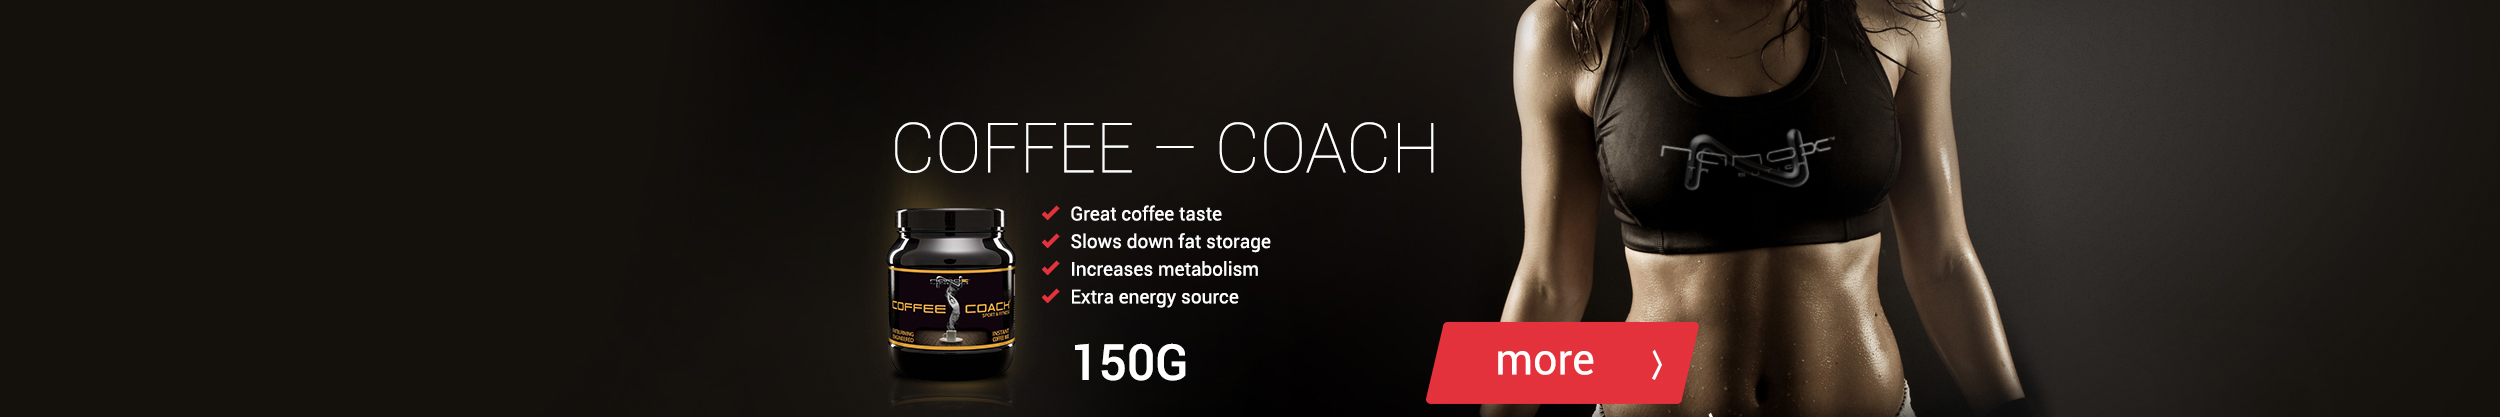 CoffeeCoach_ENG